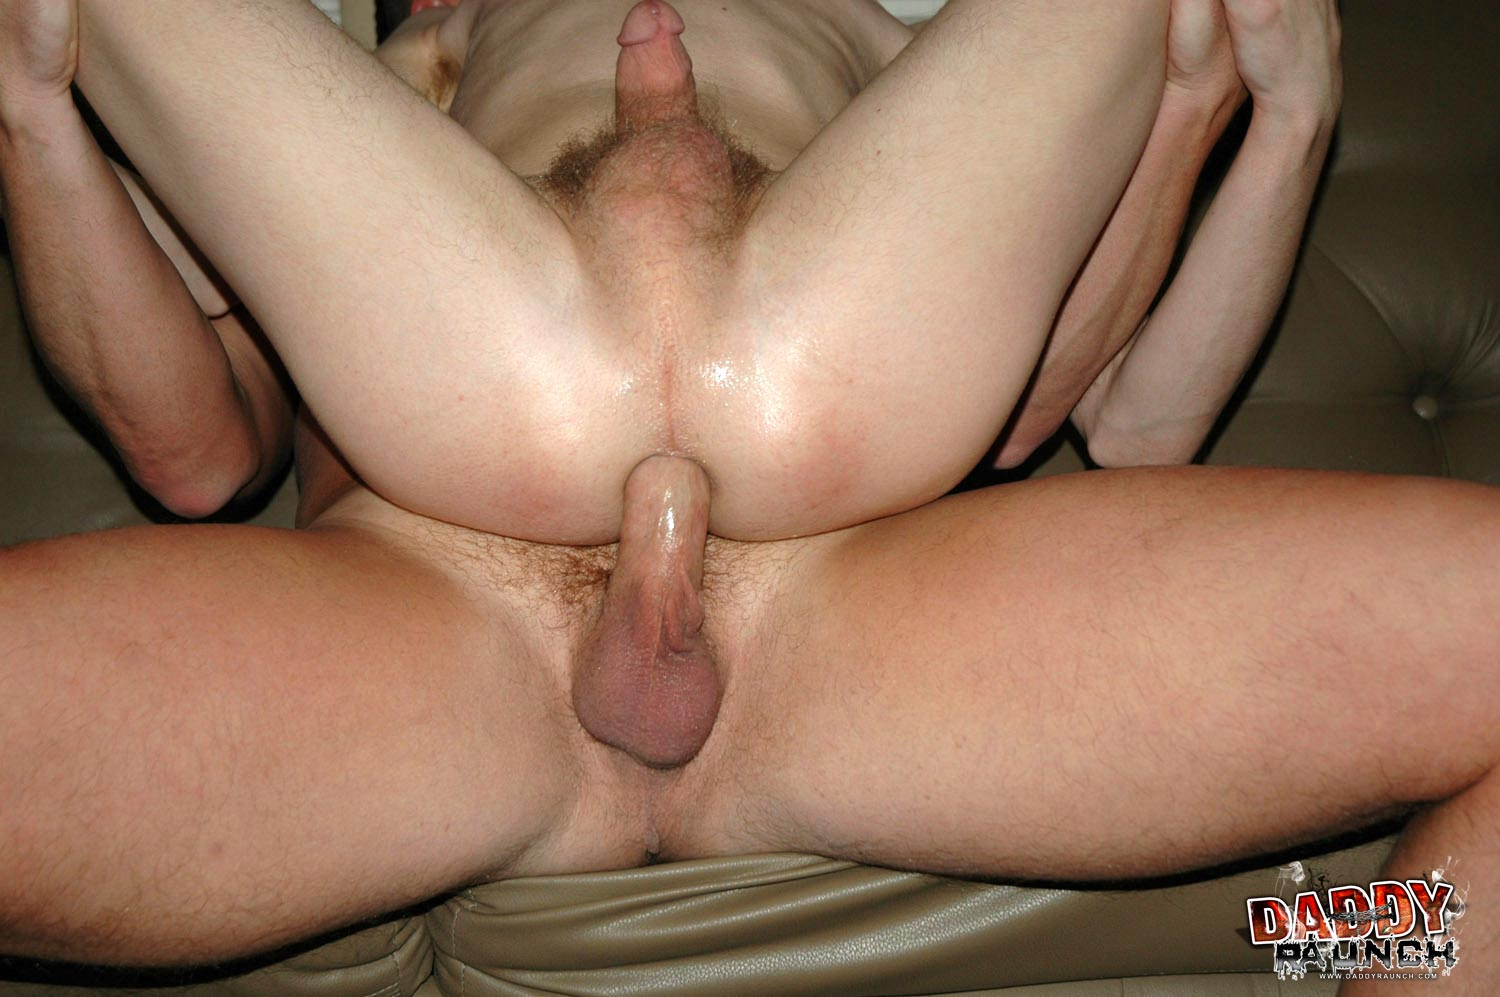 gay sex dad son bb creampie porn